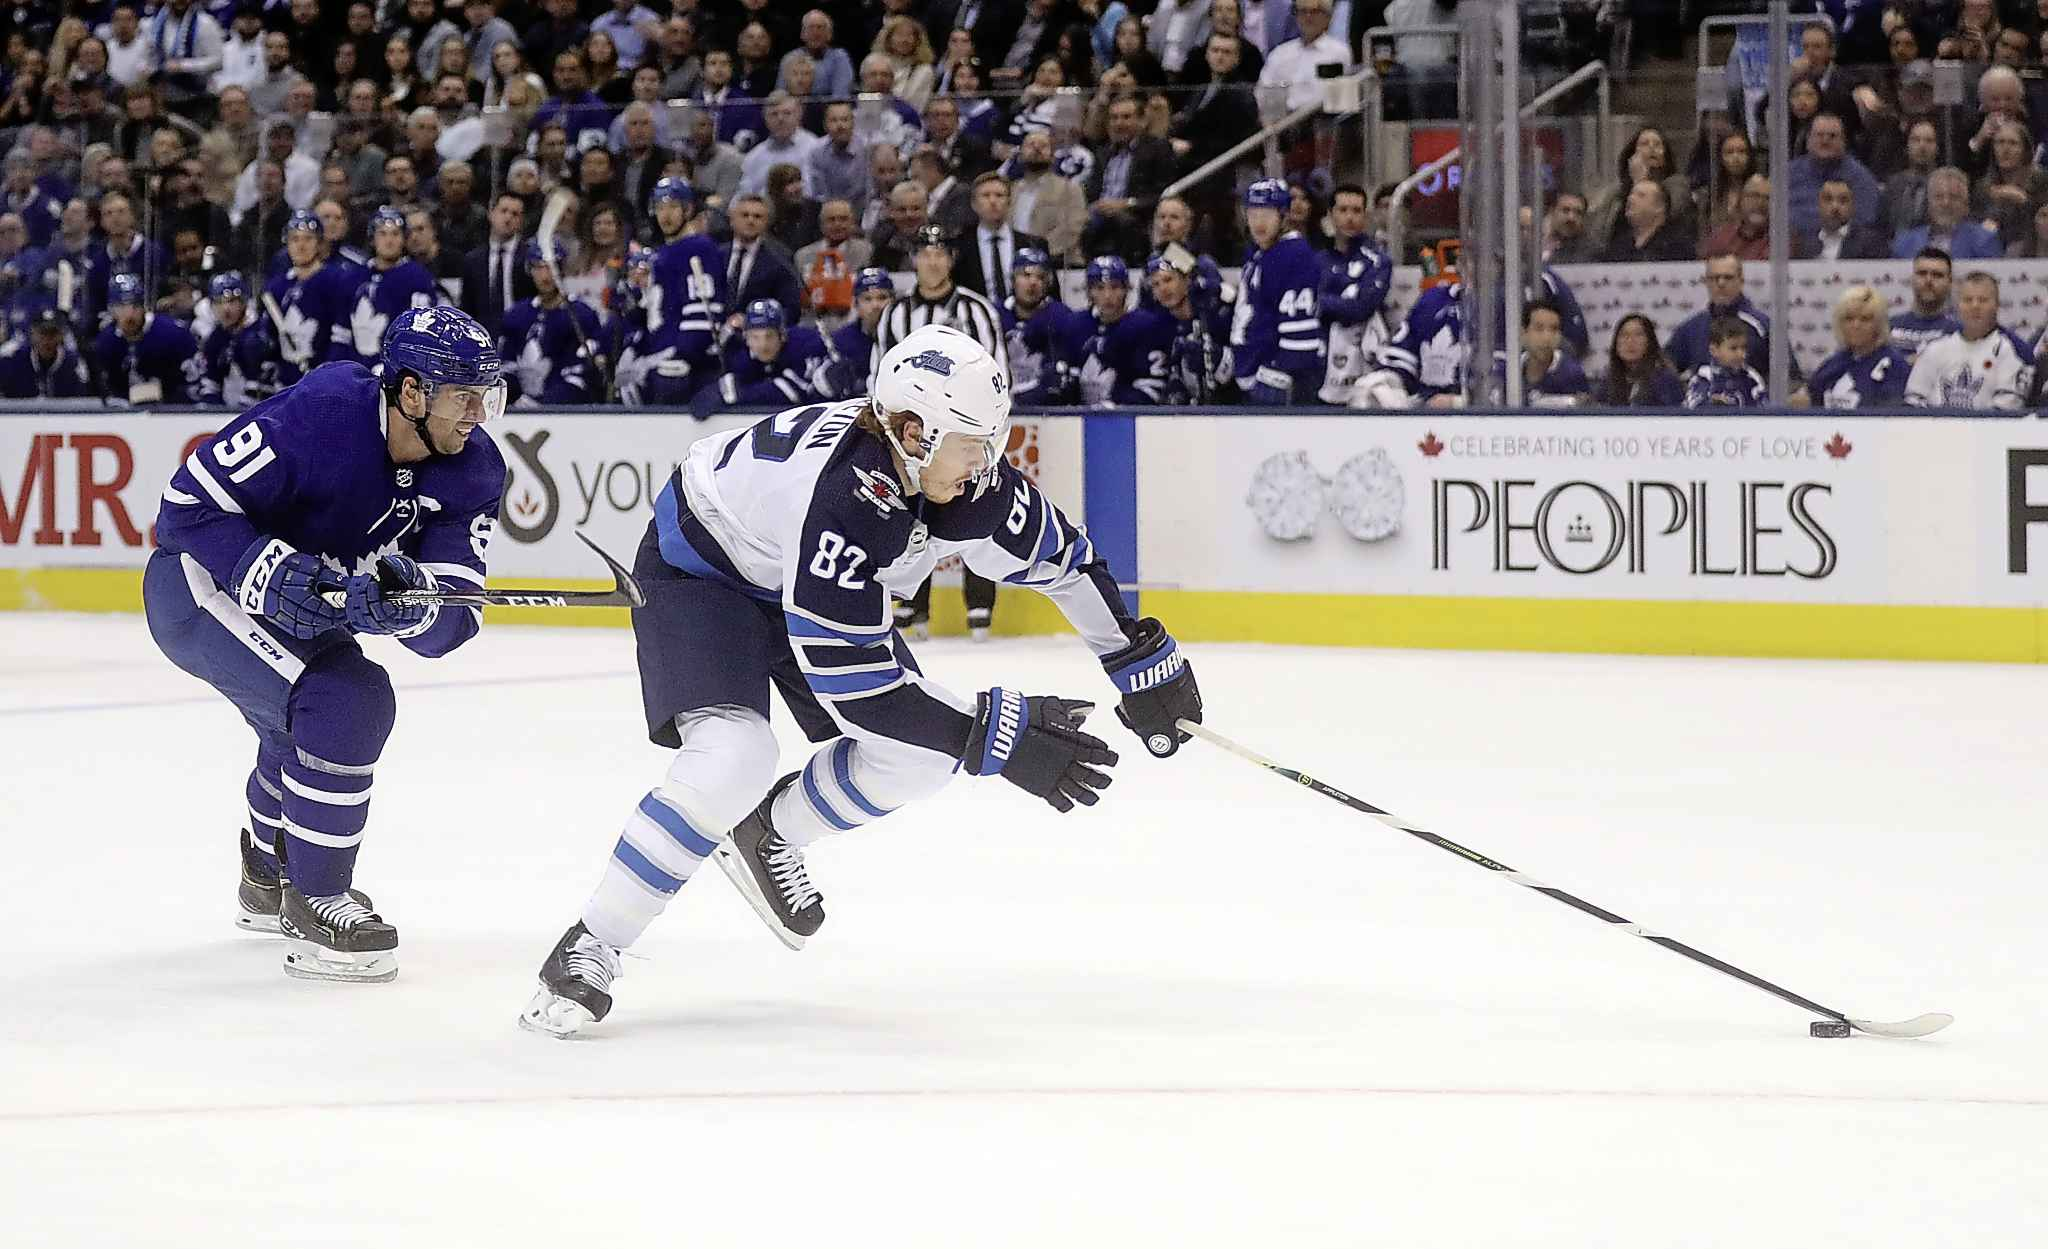 Toronto Maple Leafs' John Tavares trails Winnipeg Jets' Mason Appleton as he streaks in on a breakaway short-handed goal during the first period in Toronto Wednesday.